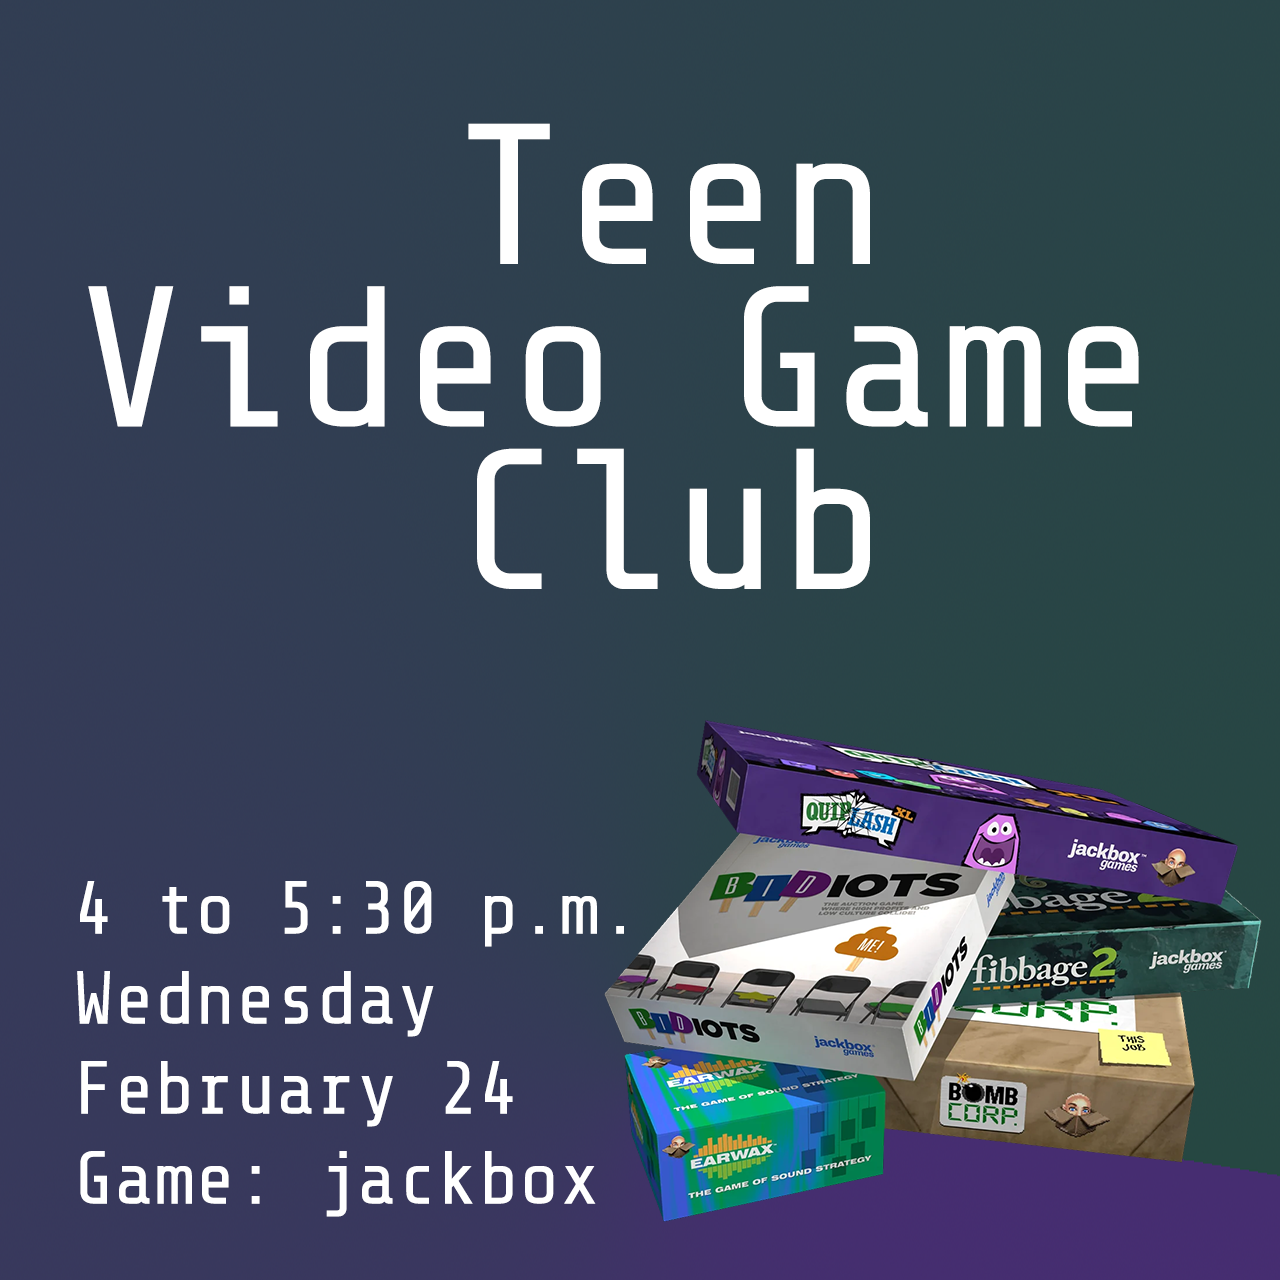 Teen Video Game Club - Jackbox Games